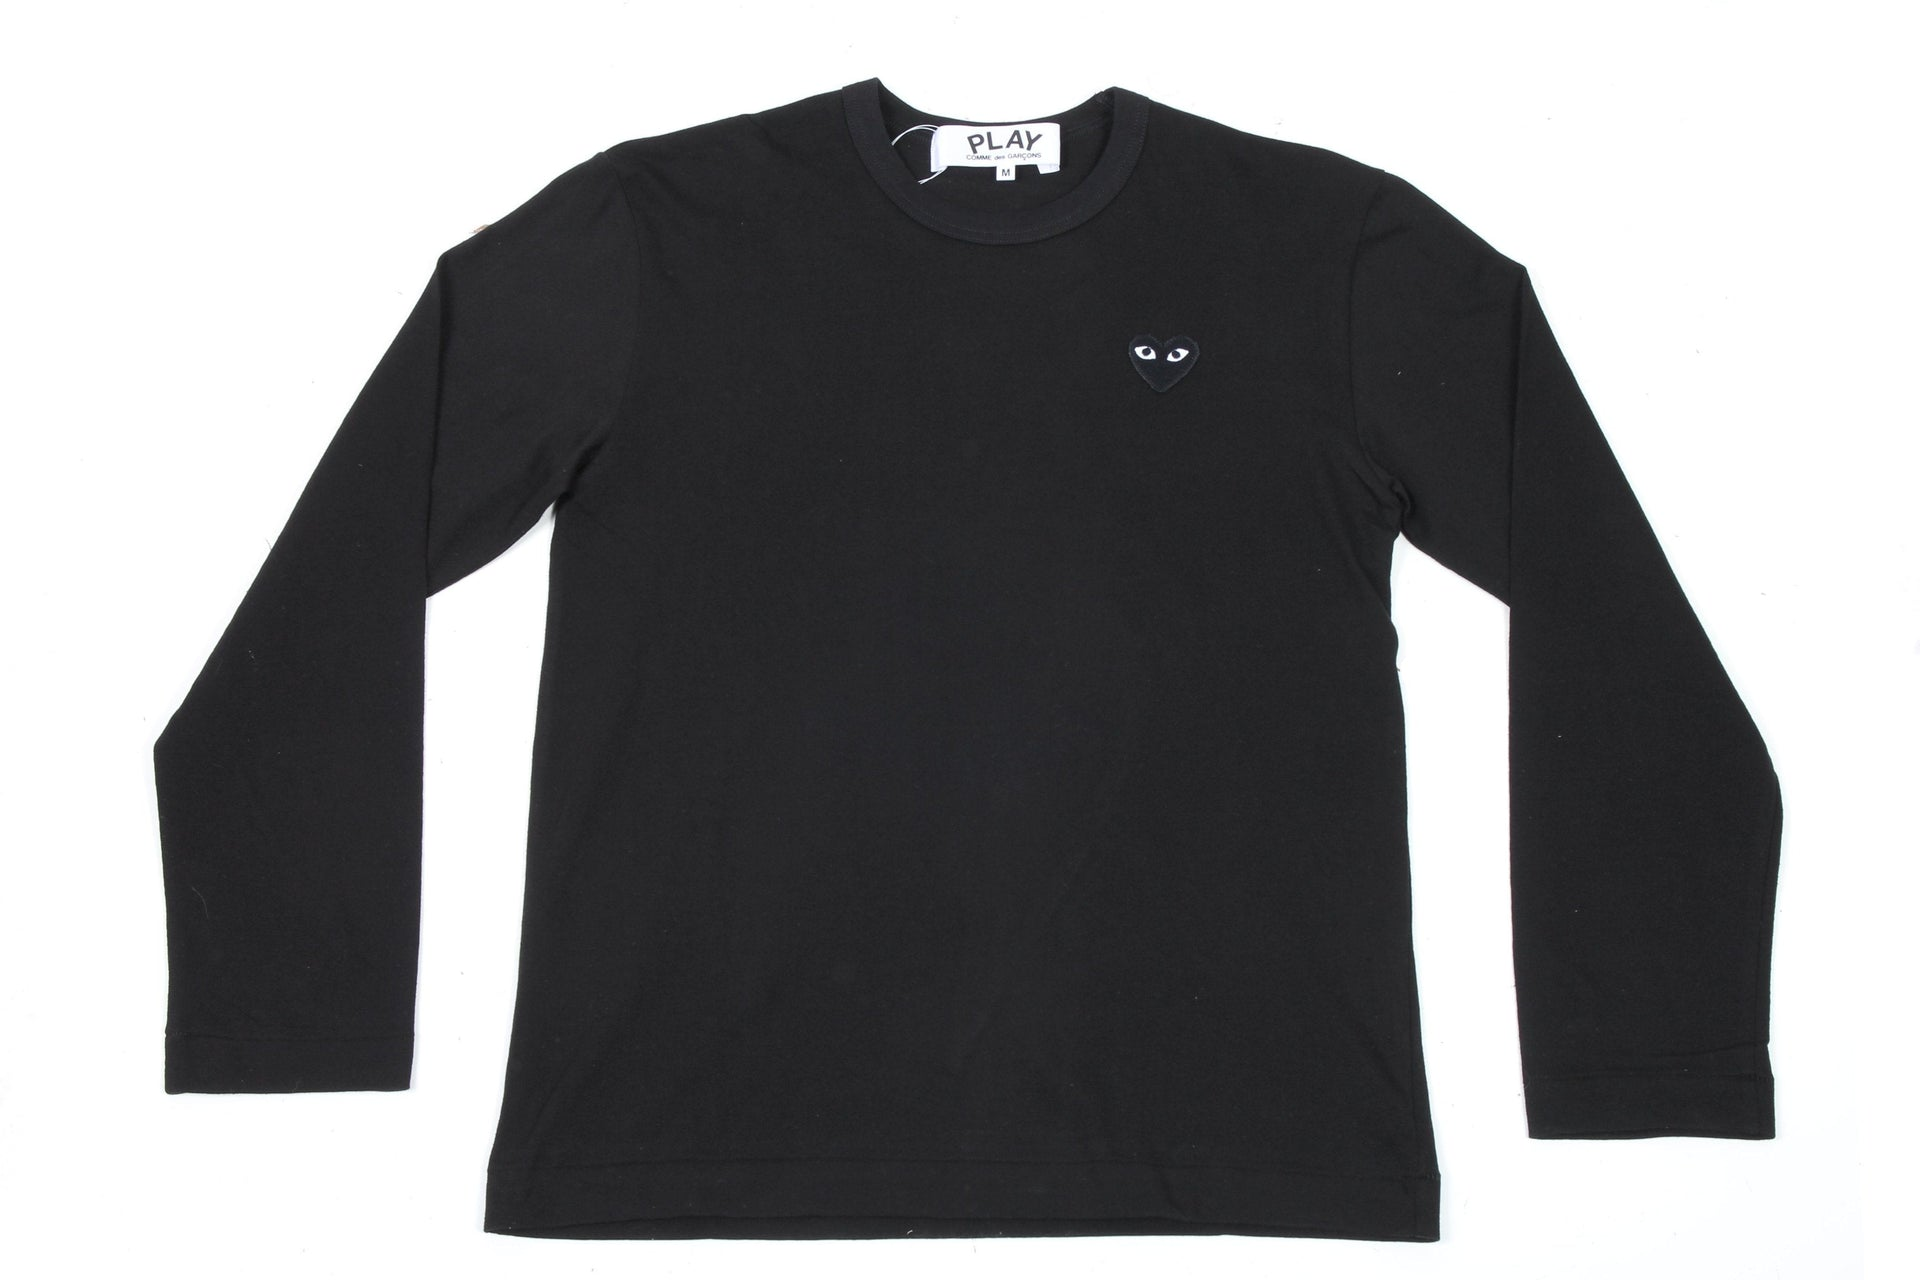 BLACK HEART BLACK L/S SHIRT MENS SOFTGOODS COMME DES GARCONS BLACK/BLACK S